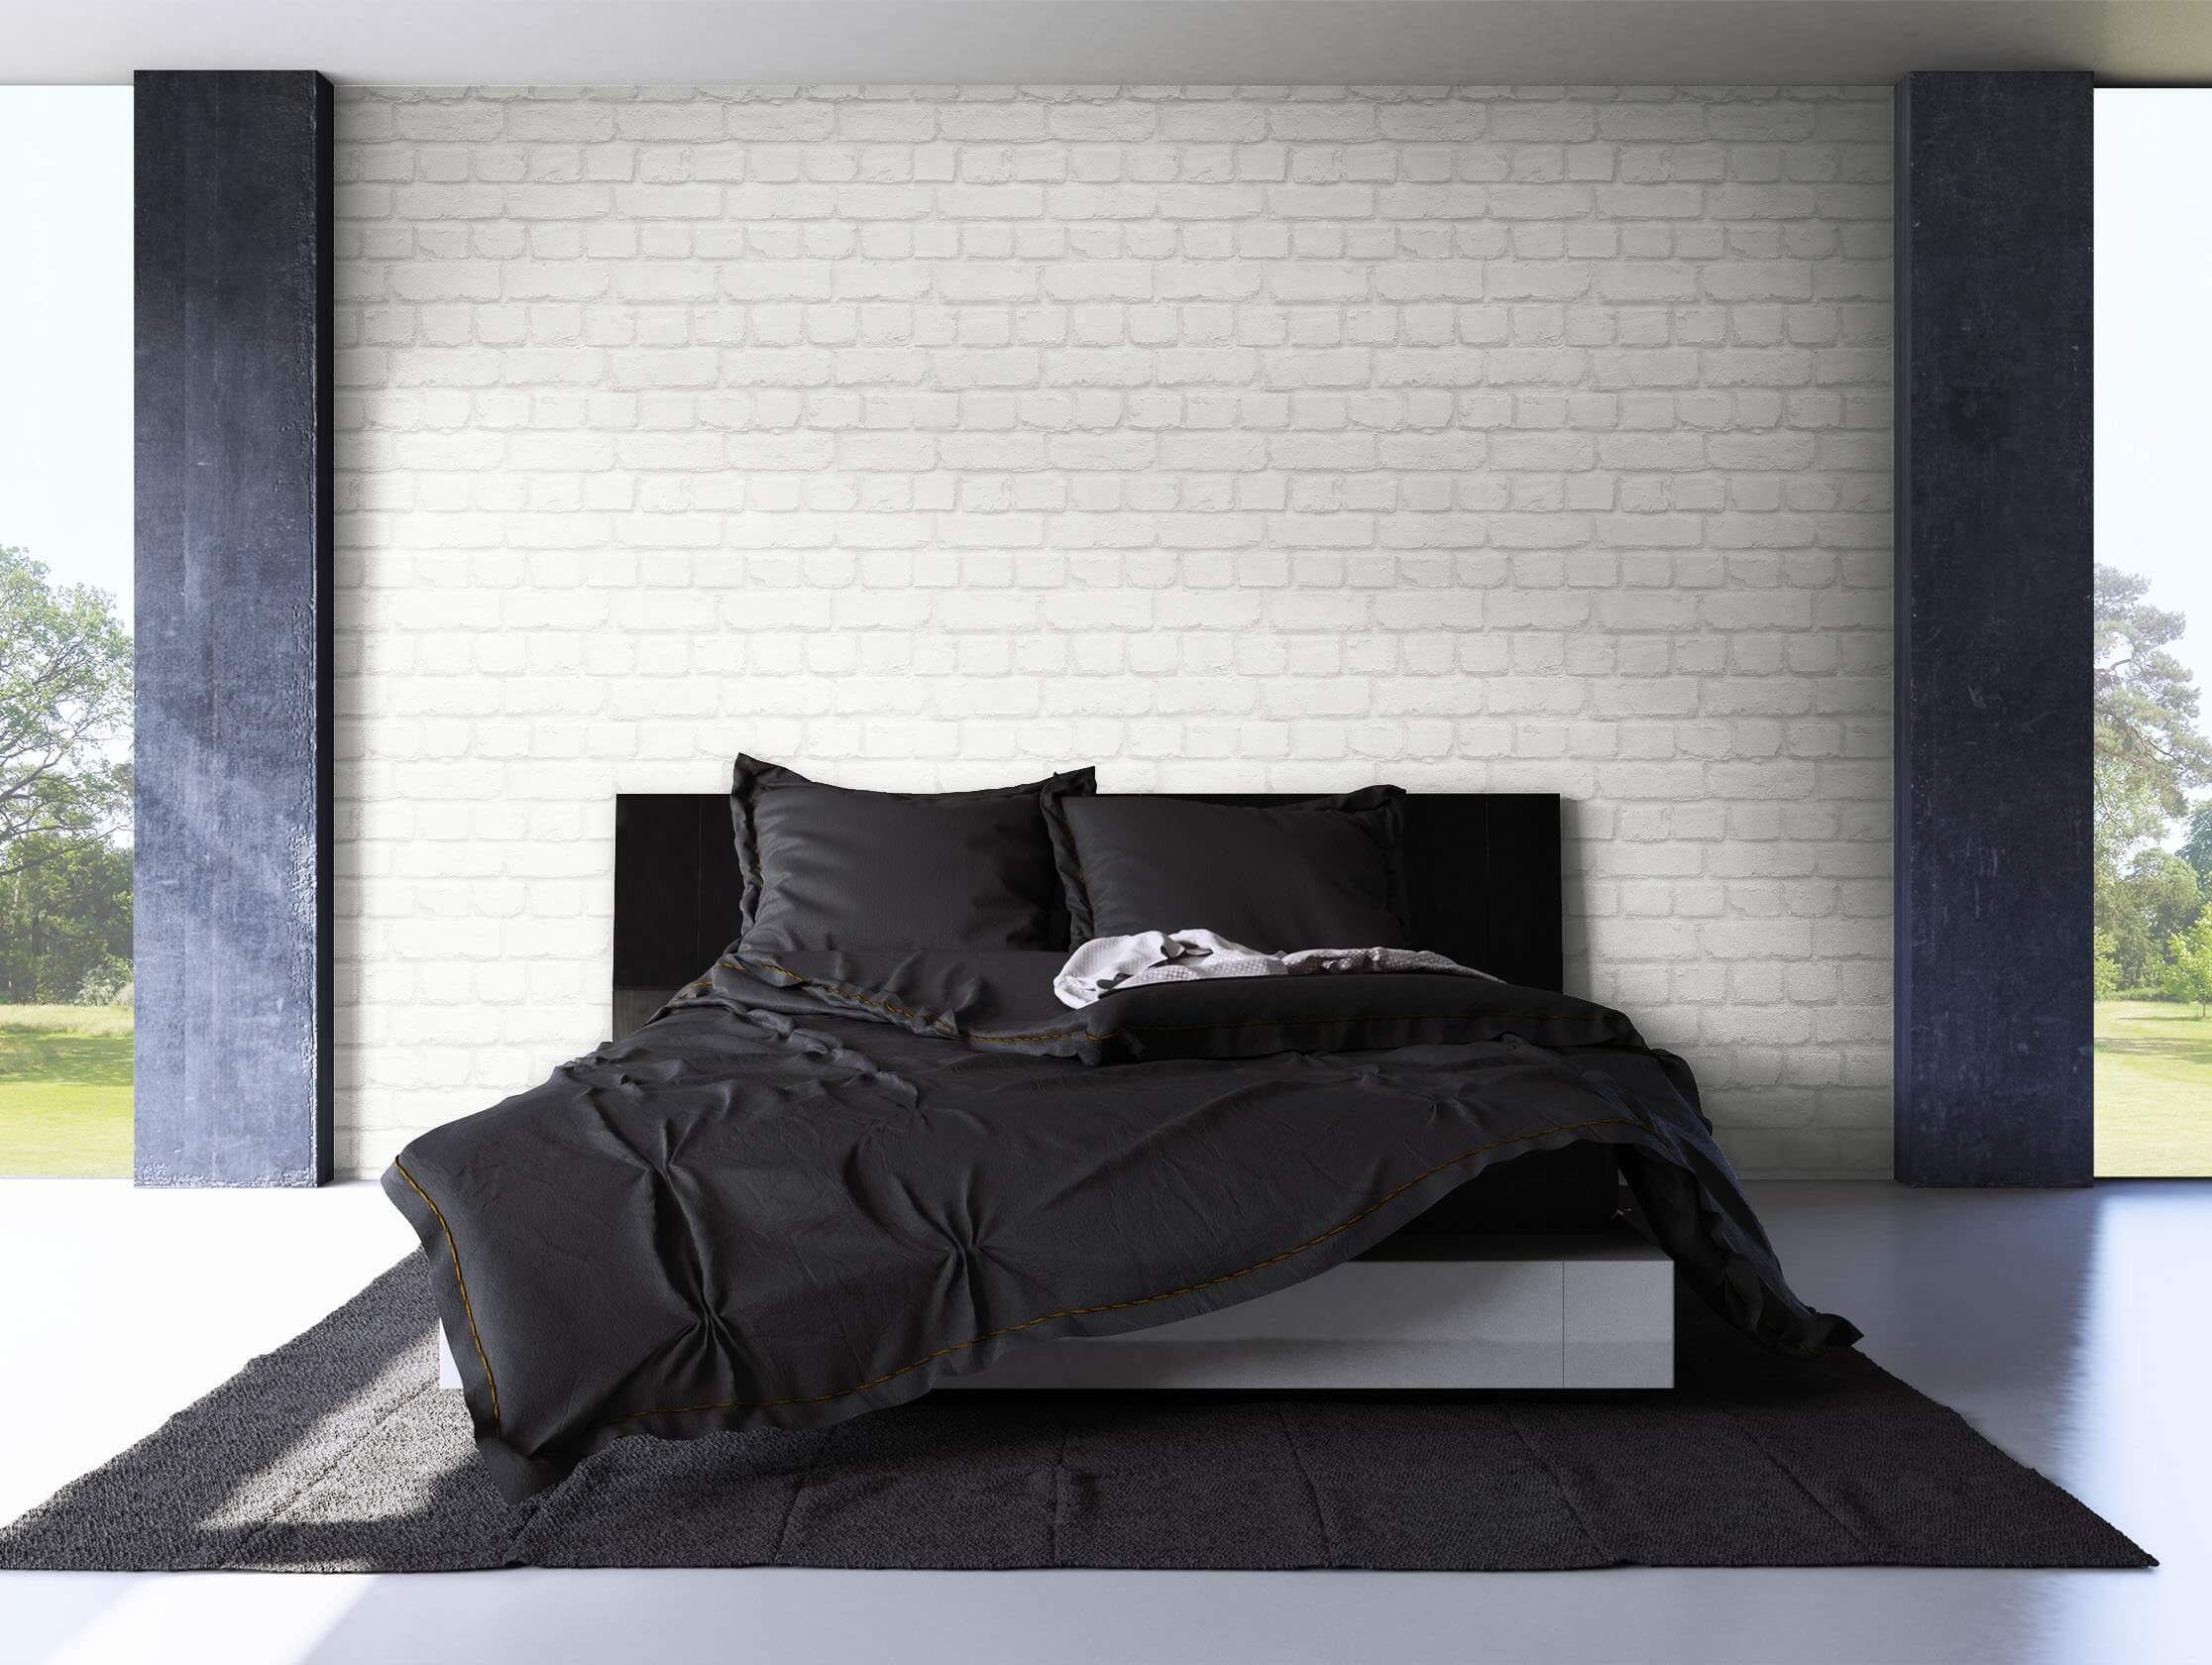 papiertapete wei modern mauer stein wohnen schlafen diele newroom. Black Bedroom Furniture Sets. Home Design Ideas